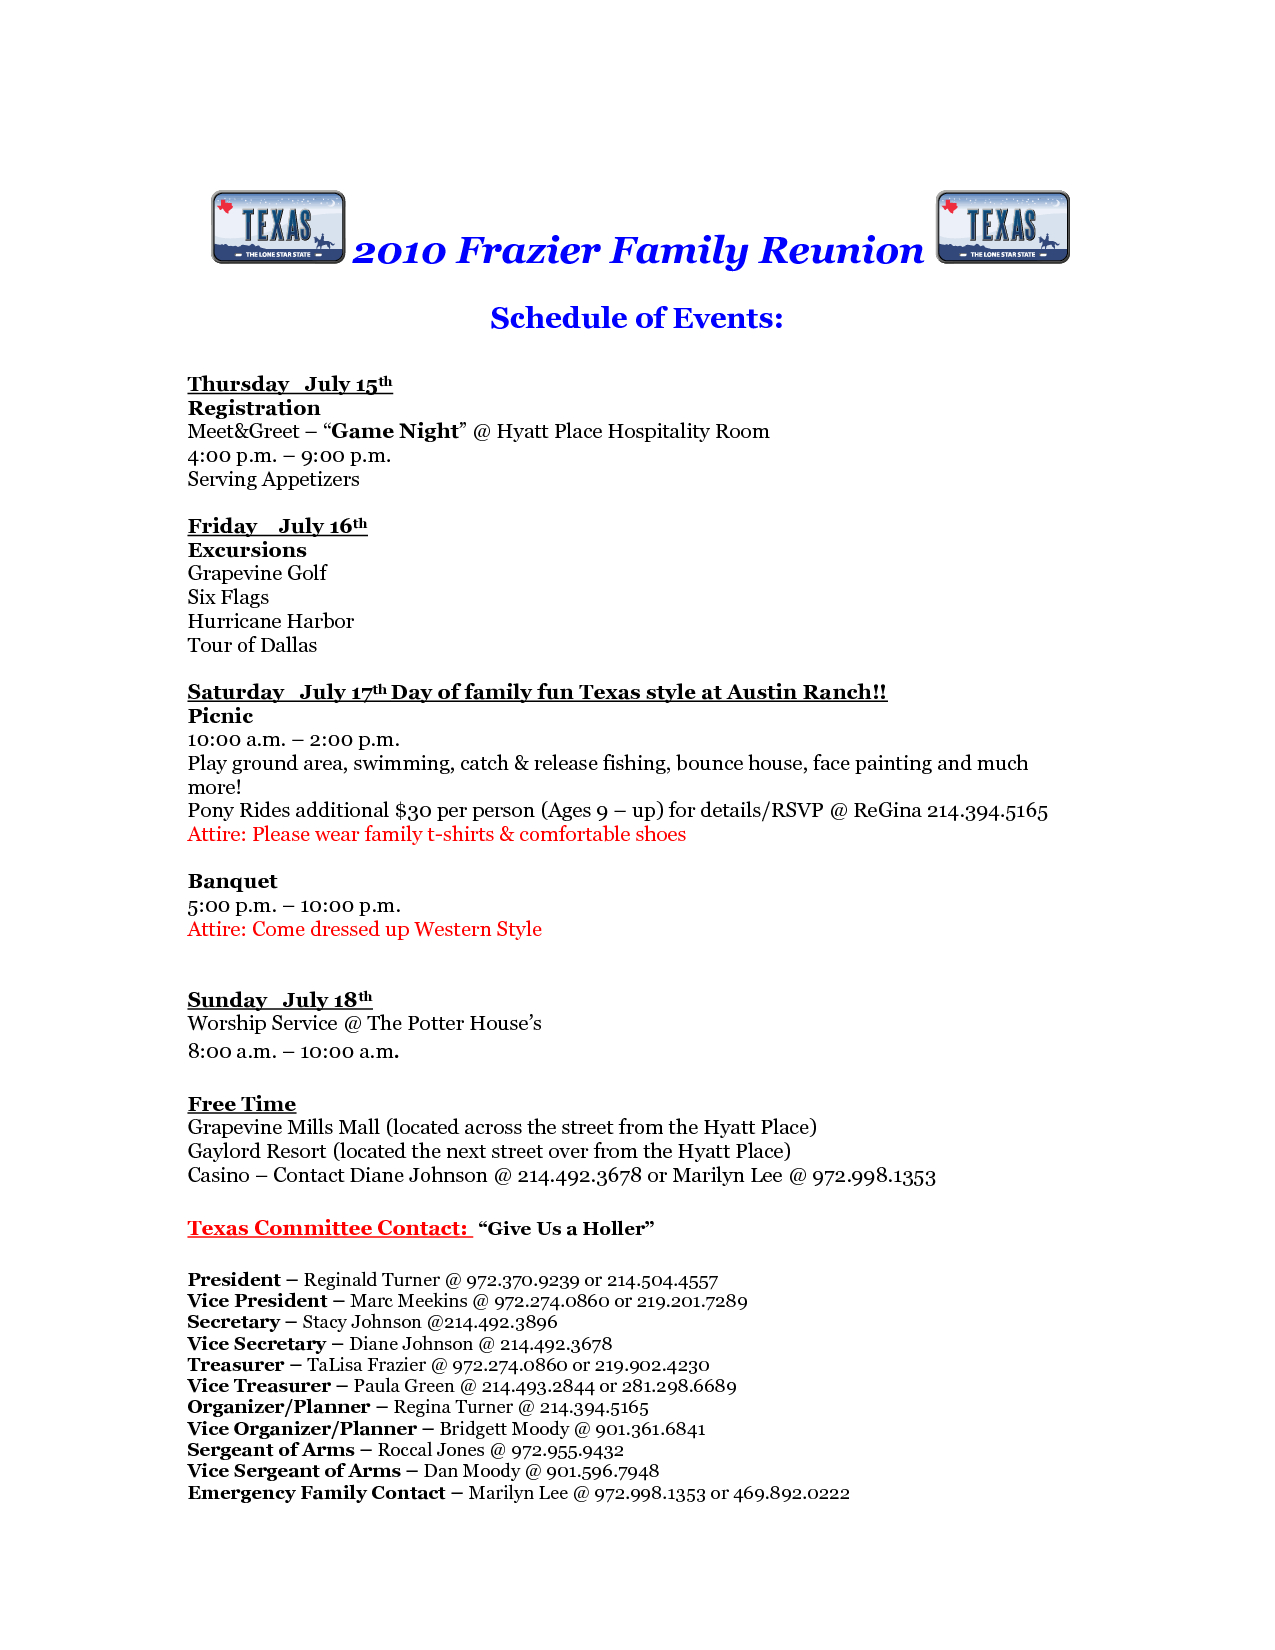 Free Printable Family Reunion Letters   Frazier Family Reunion For Family Reunion Letter Template